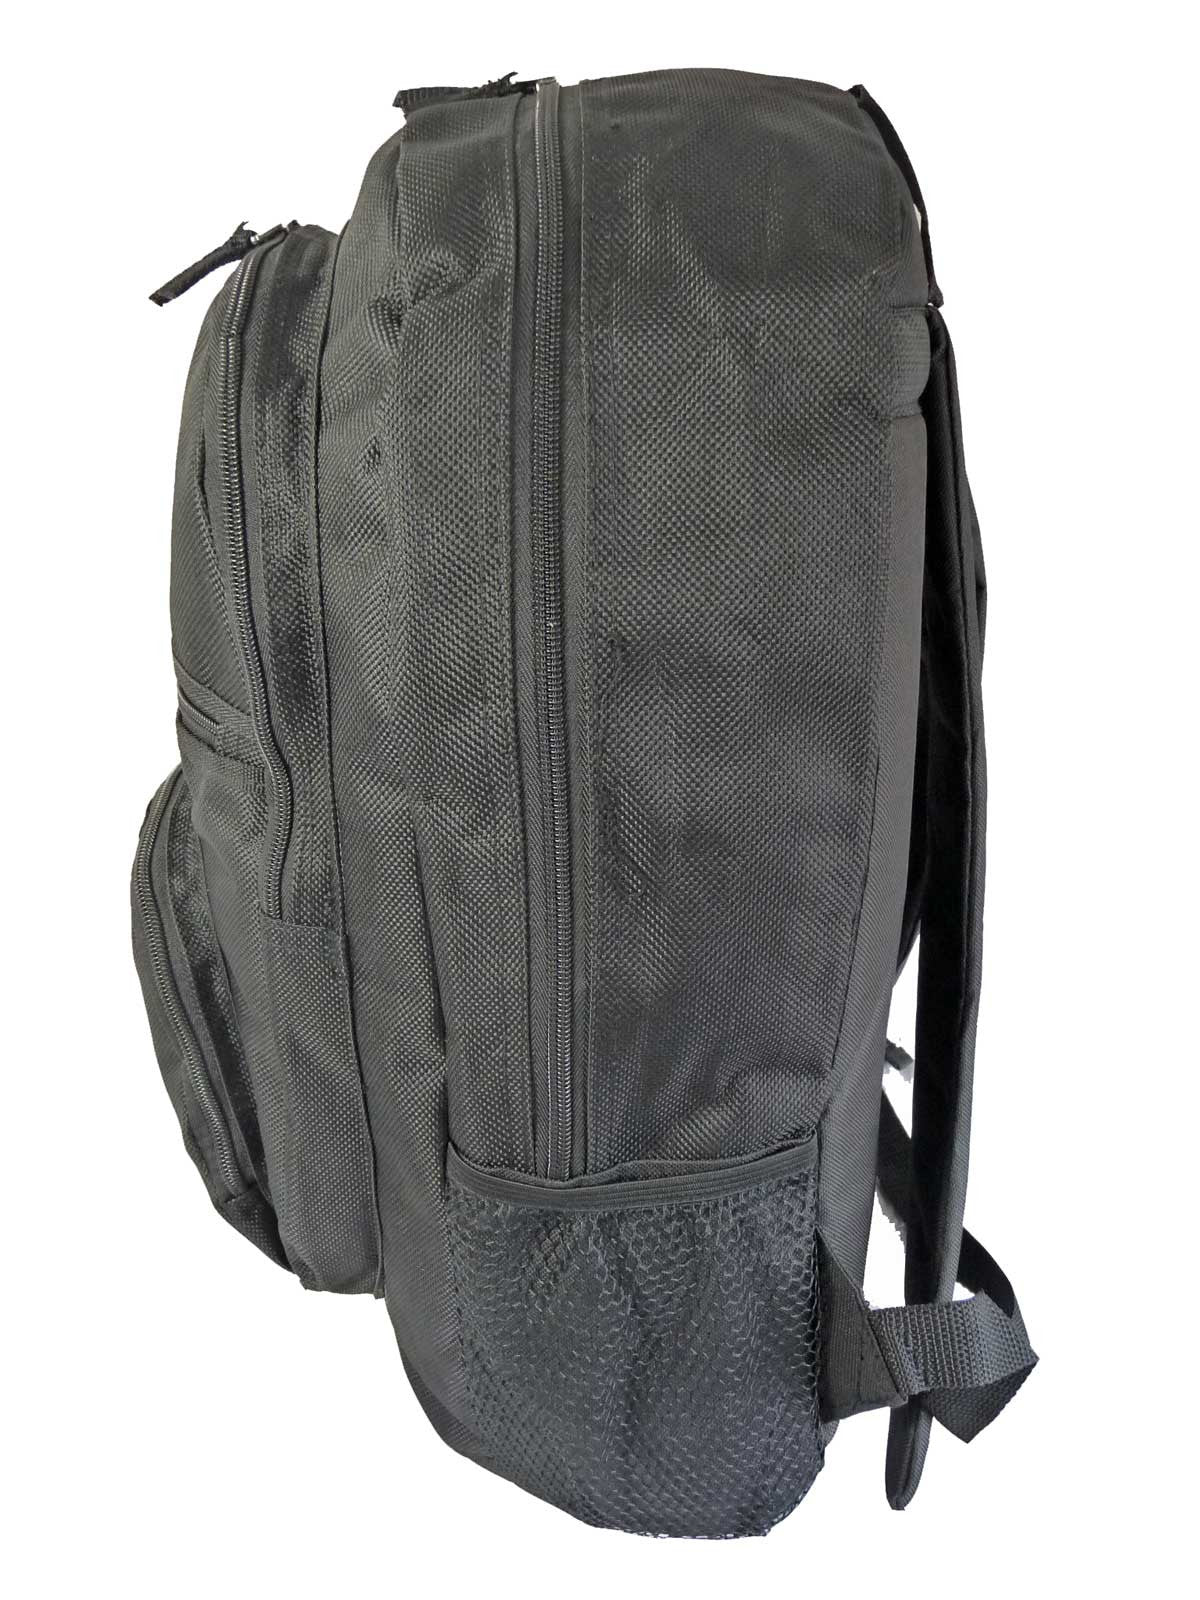 Kids School Bags RL37M Black S Side View